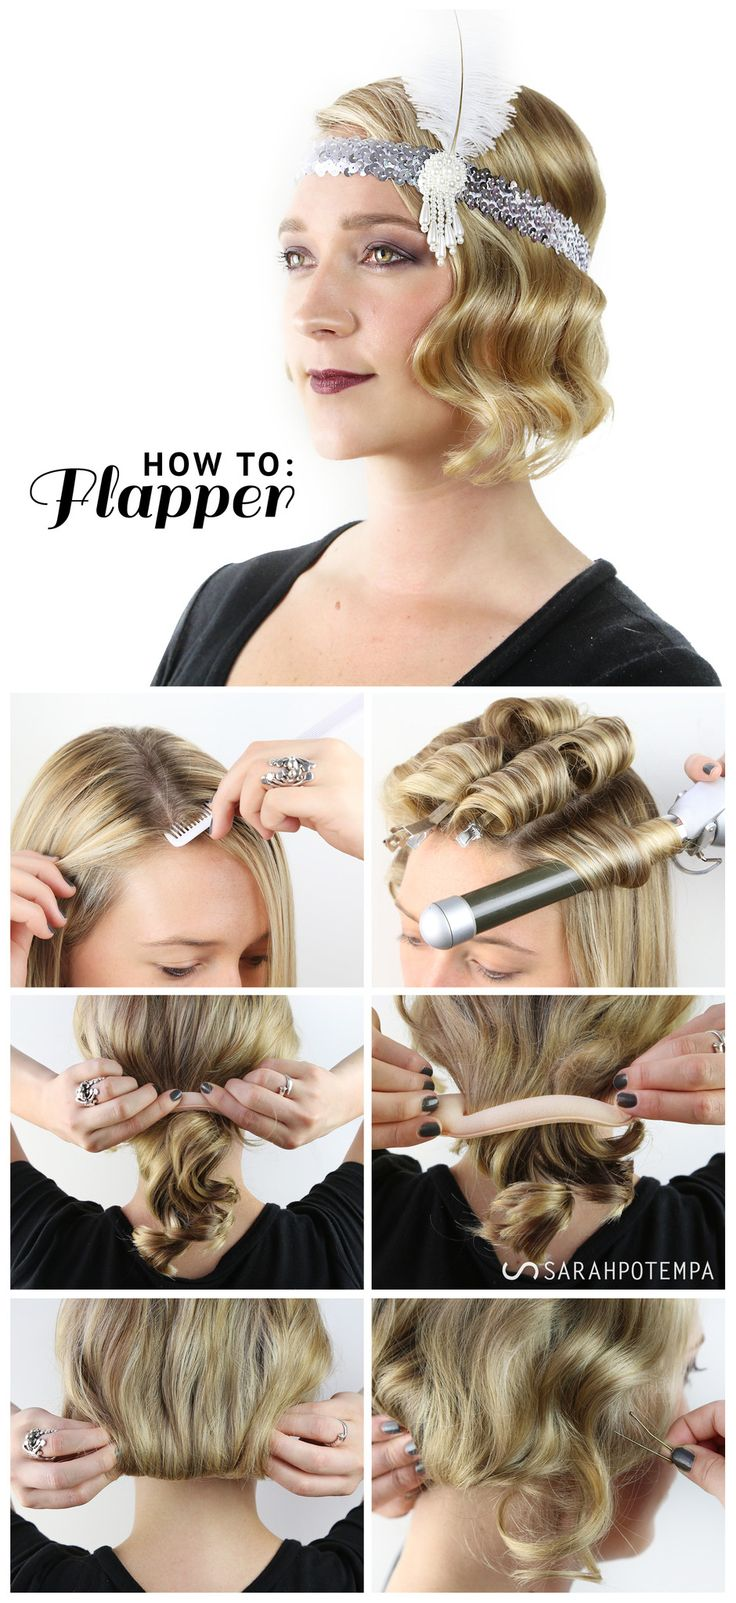 HALLOWEEN LOOK: FABULOUS FLAPPER. Finger waves using the Sarah Potempa Beachwaver Pro | SARAHPOTEMPA Hairstyling Tools